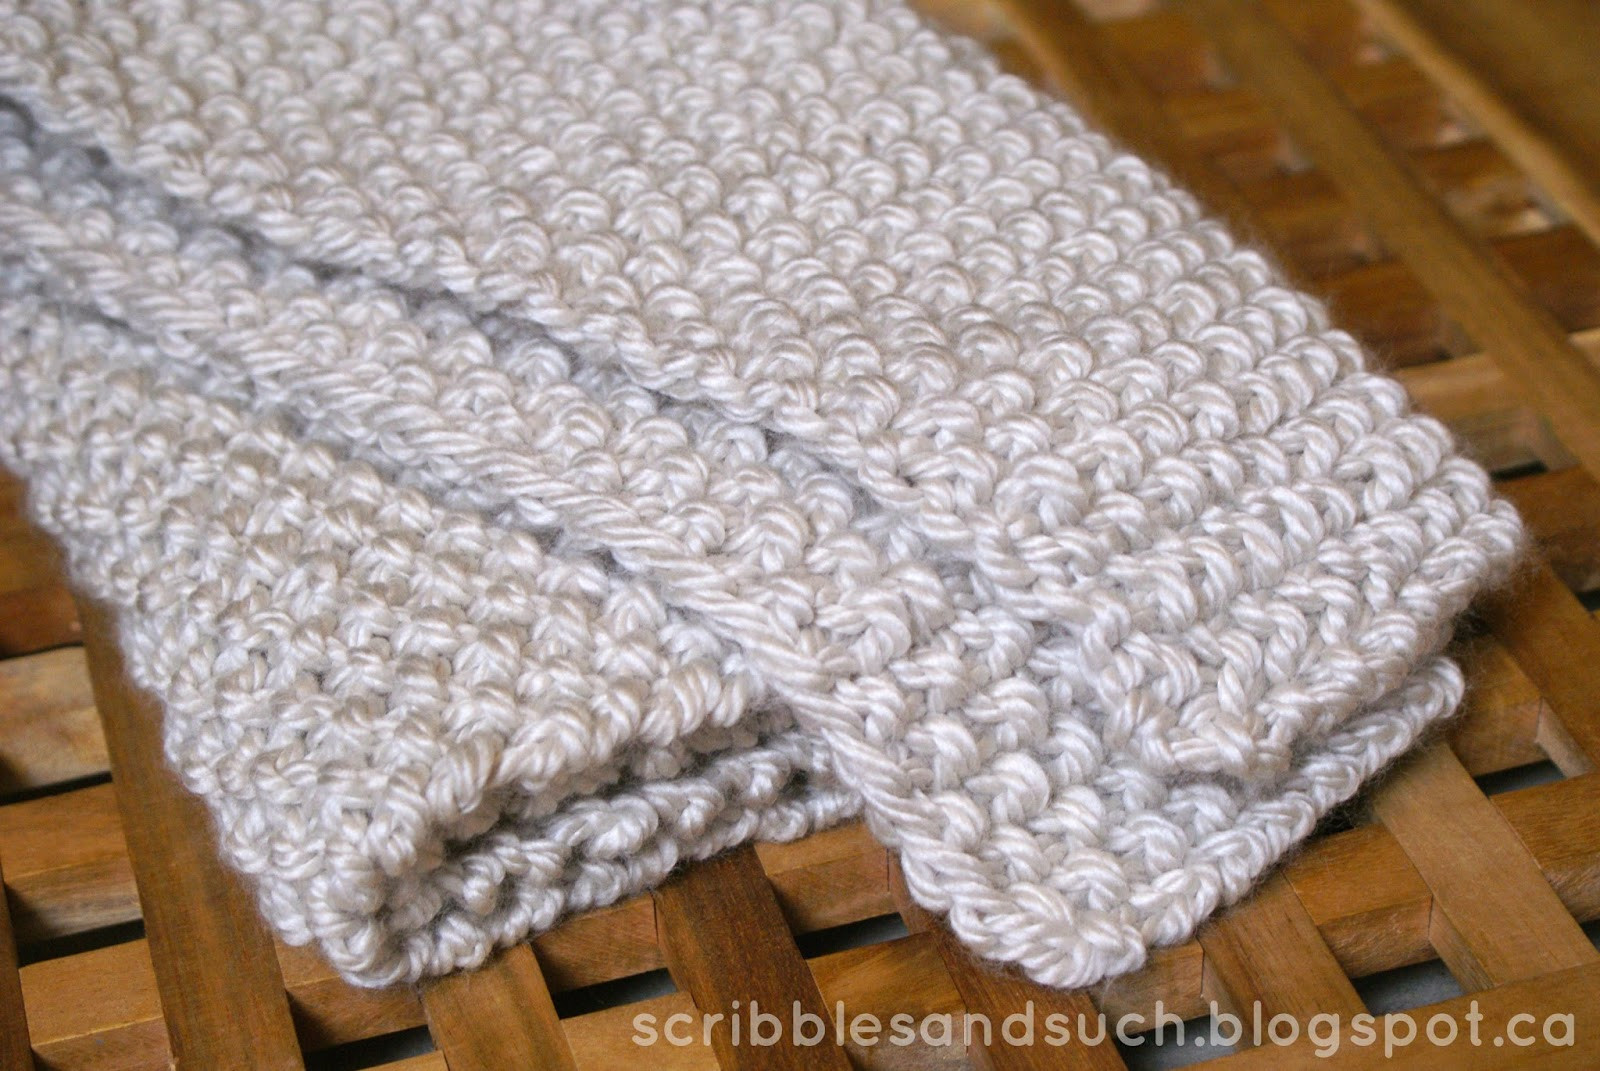 Chunky Yarn Patterns New Scribbles & Such Chunky Knitted Baby Blanket Of Adorable 41 Photos Chunky Yarn Patterns